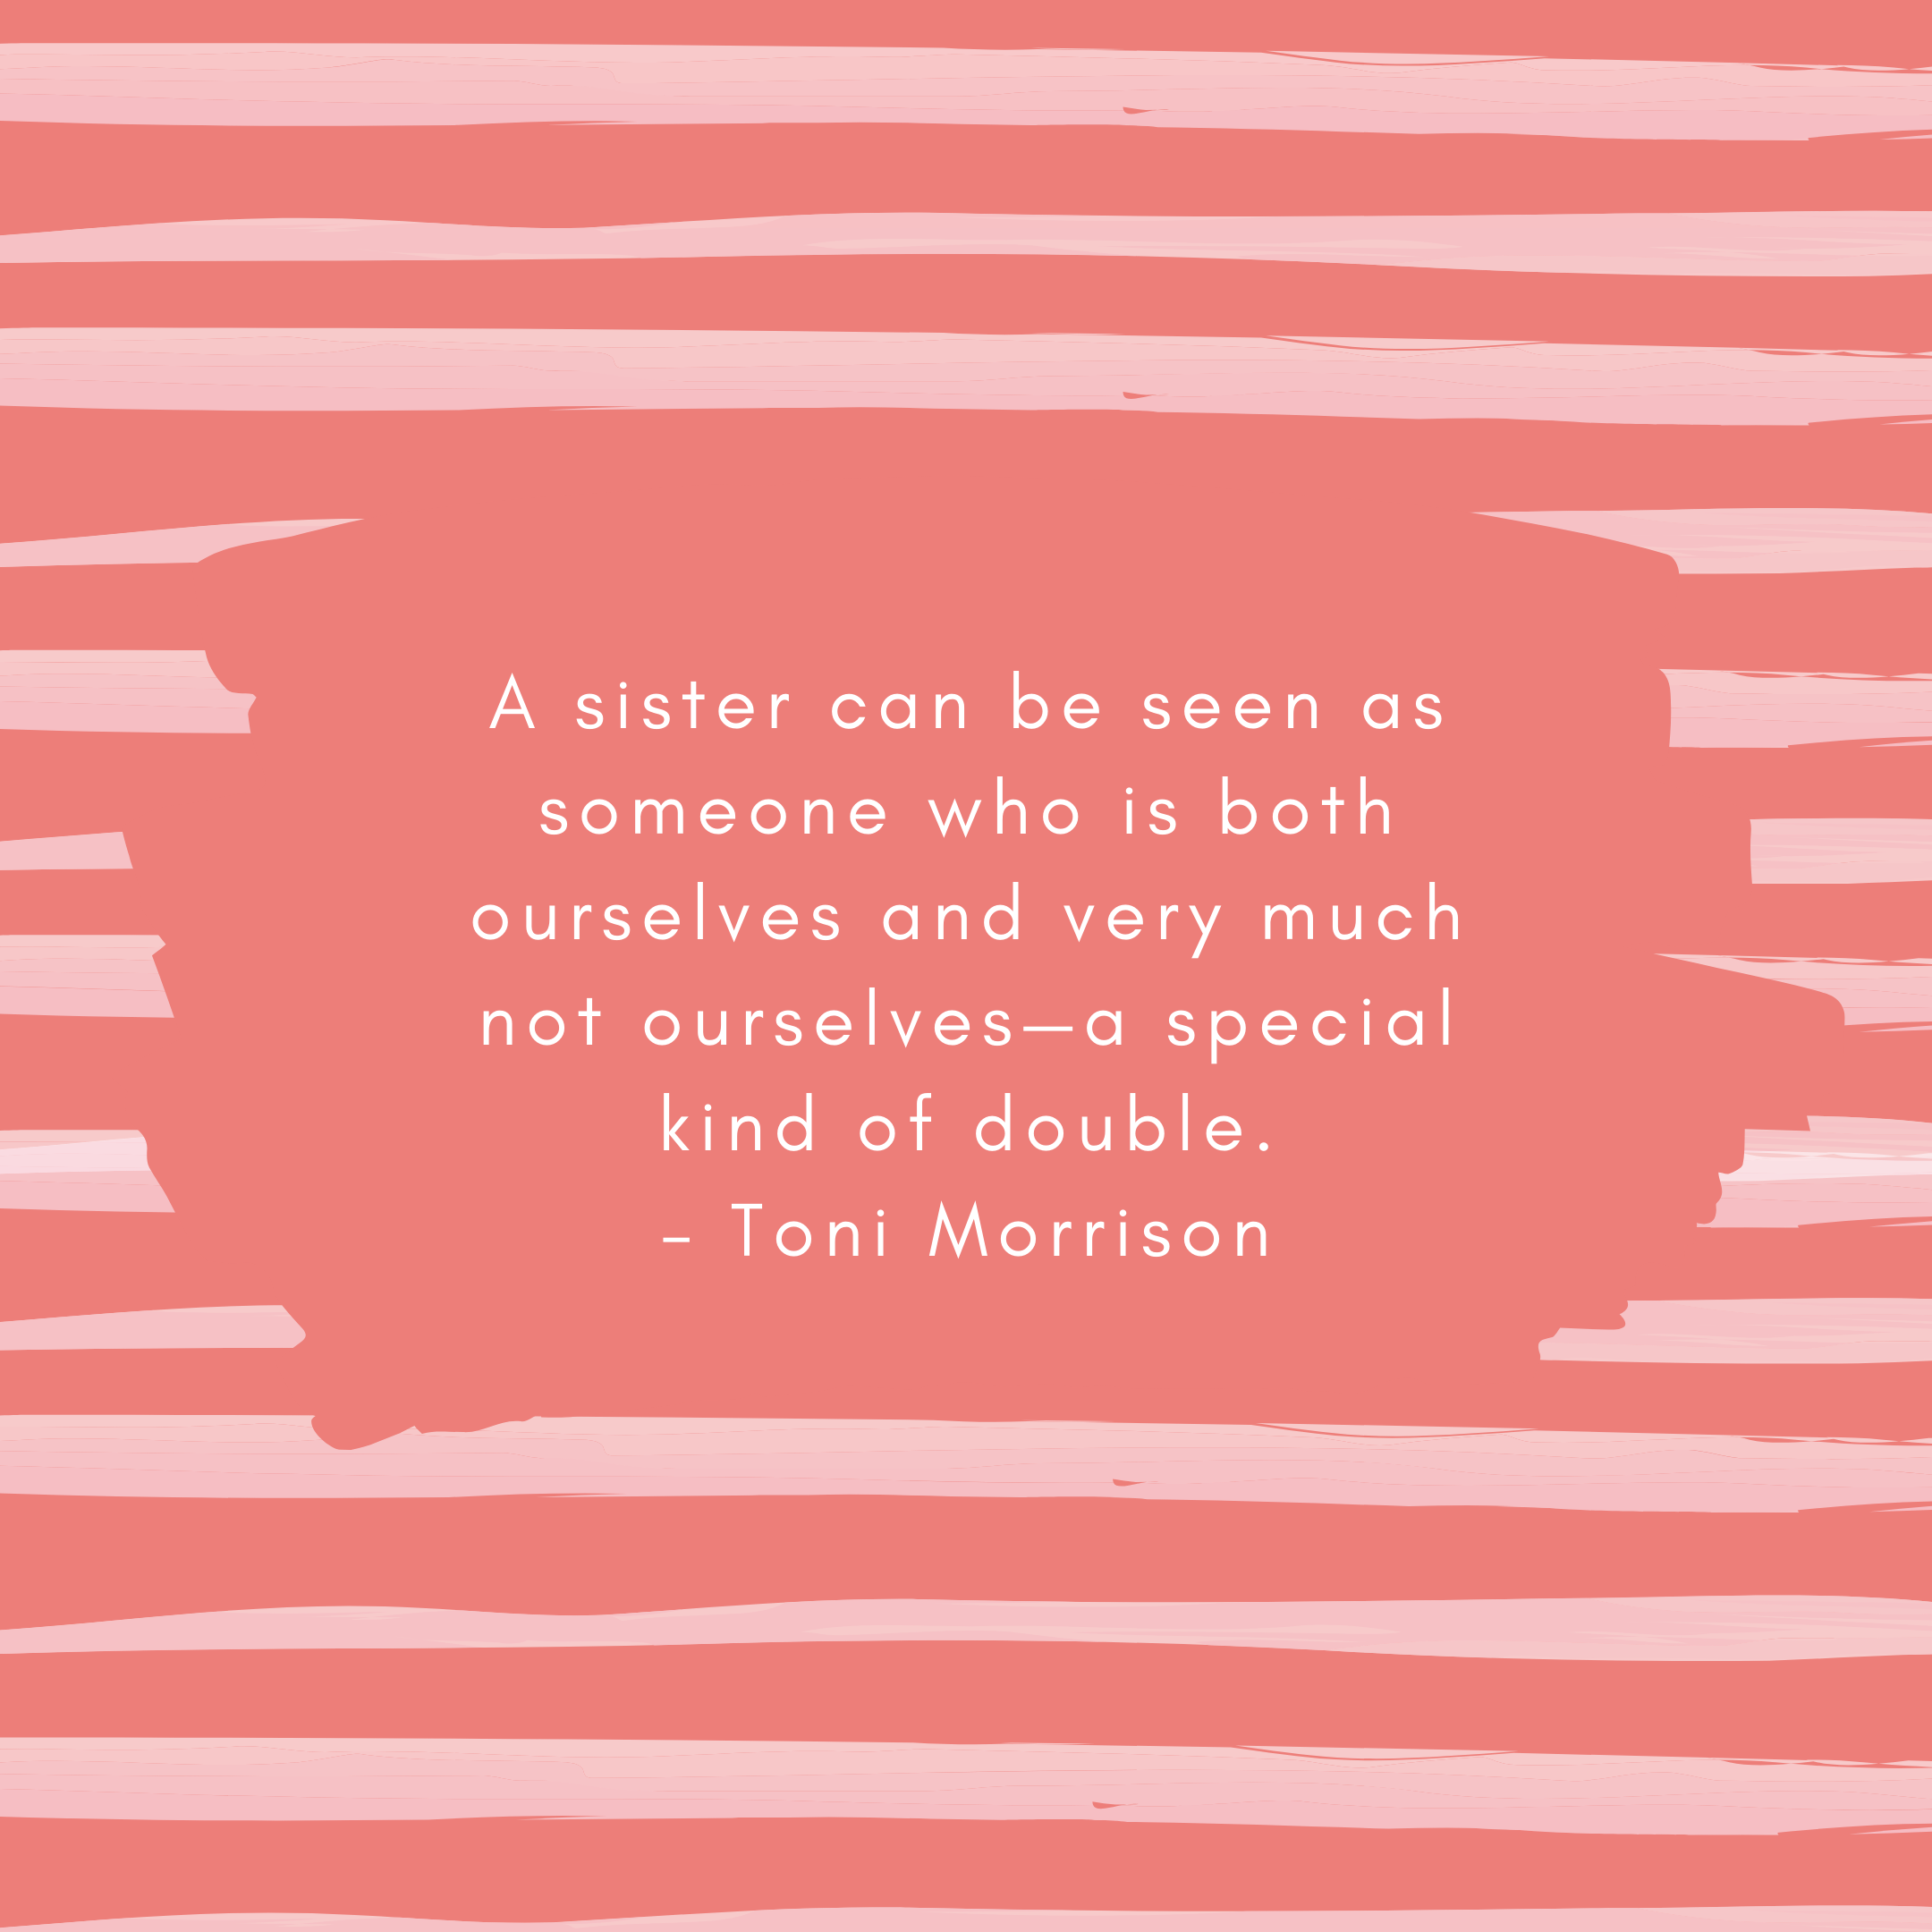 A sister can be seen as someone who is both ourselves and very much not ourselves—a special kind of double. – Toni Morrison